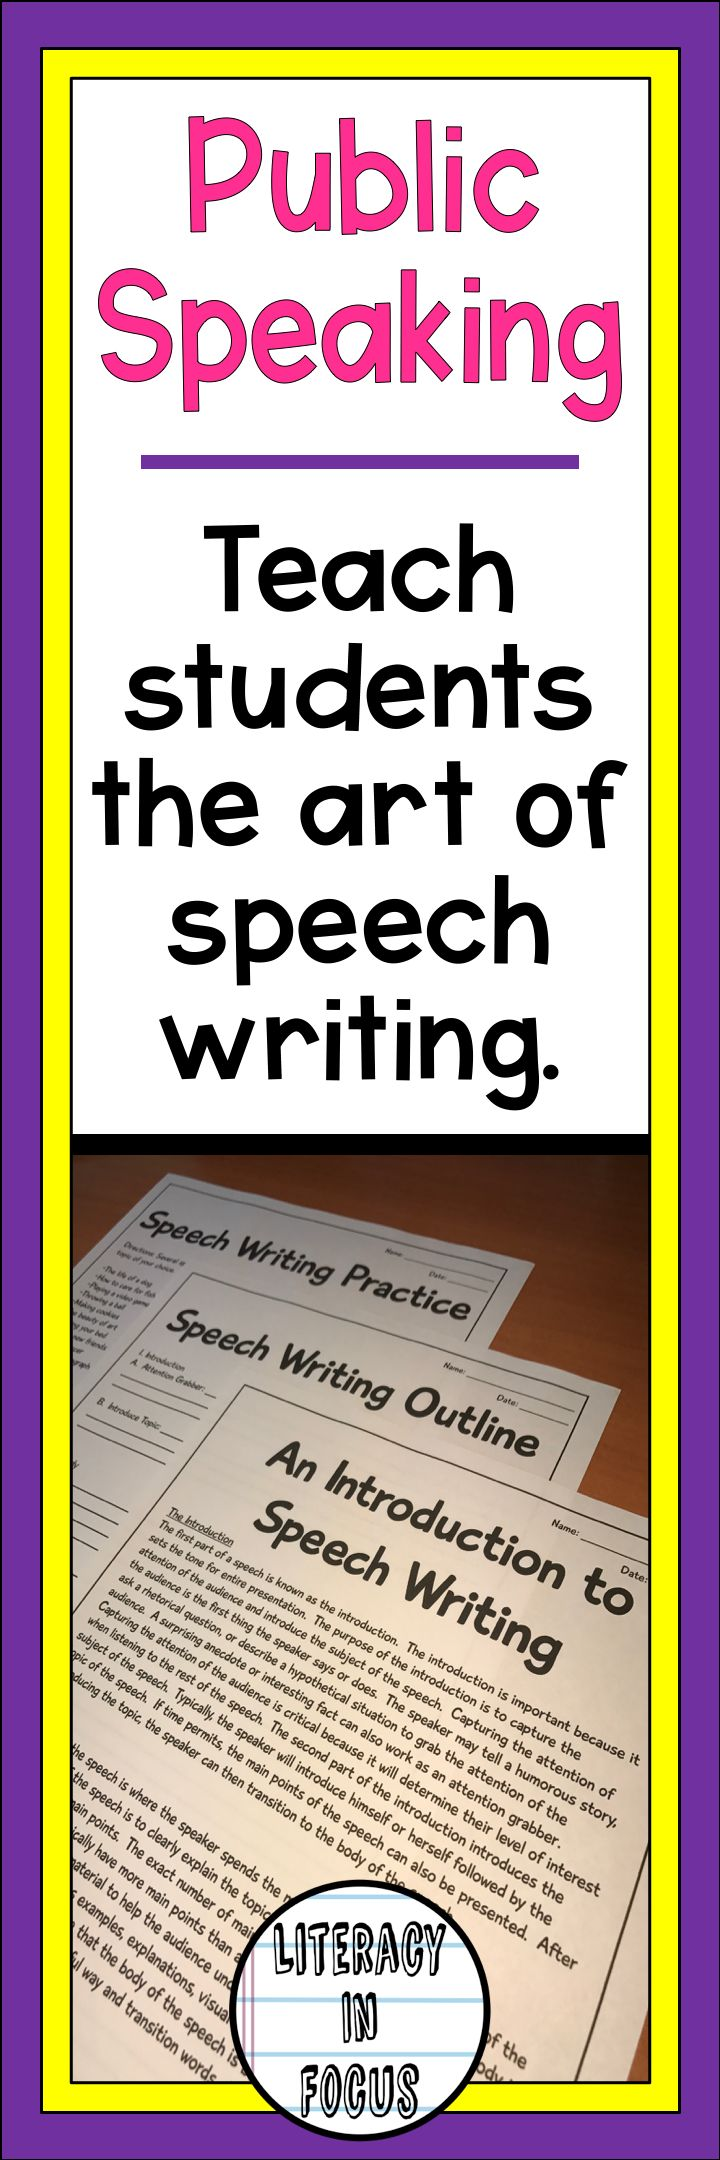 how to write an outline for a speech The basic structure of a speech all speeches contain at least three parts: an introduction a body  when making an outline you should not write full sentences, but just key words and phrases 1  note that the presentation outline is not a word-for-word script for the speech but an outline of ideas to serve as an organisational and presentation tool for the speaker.